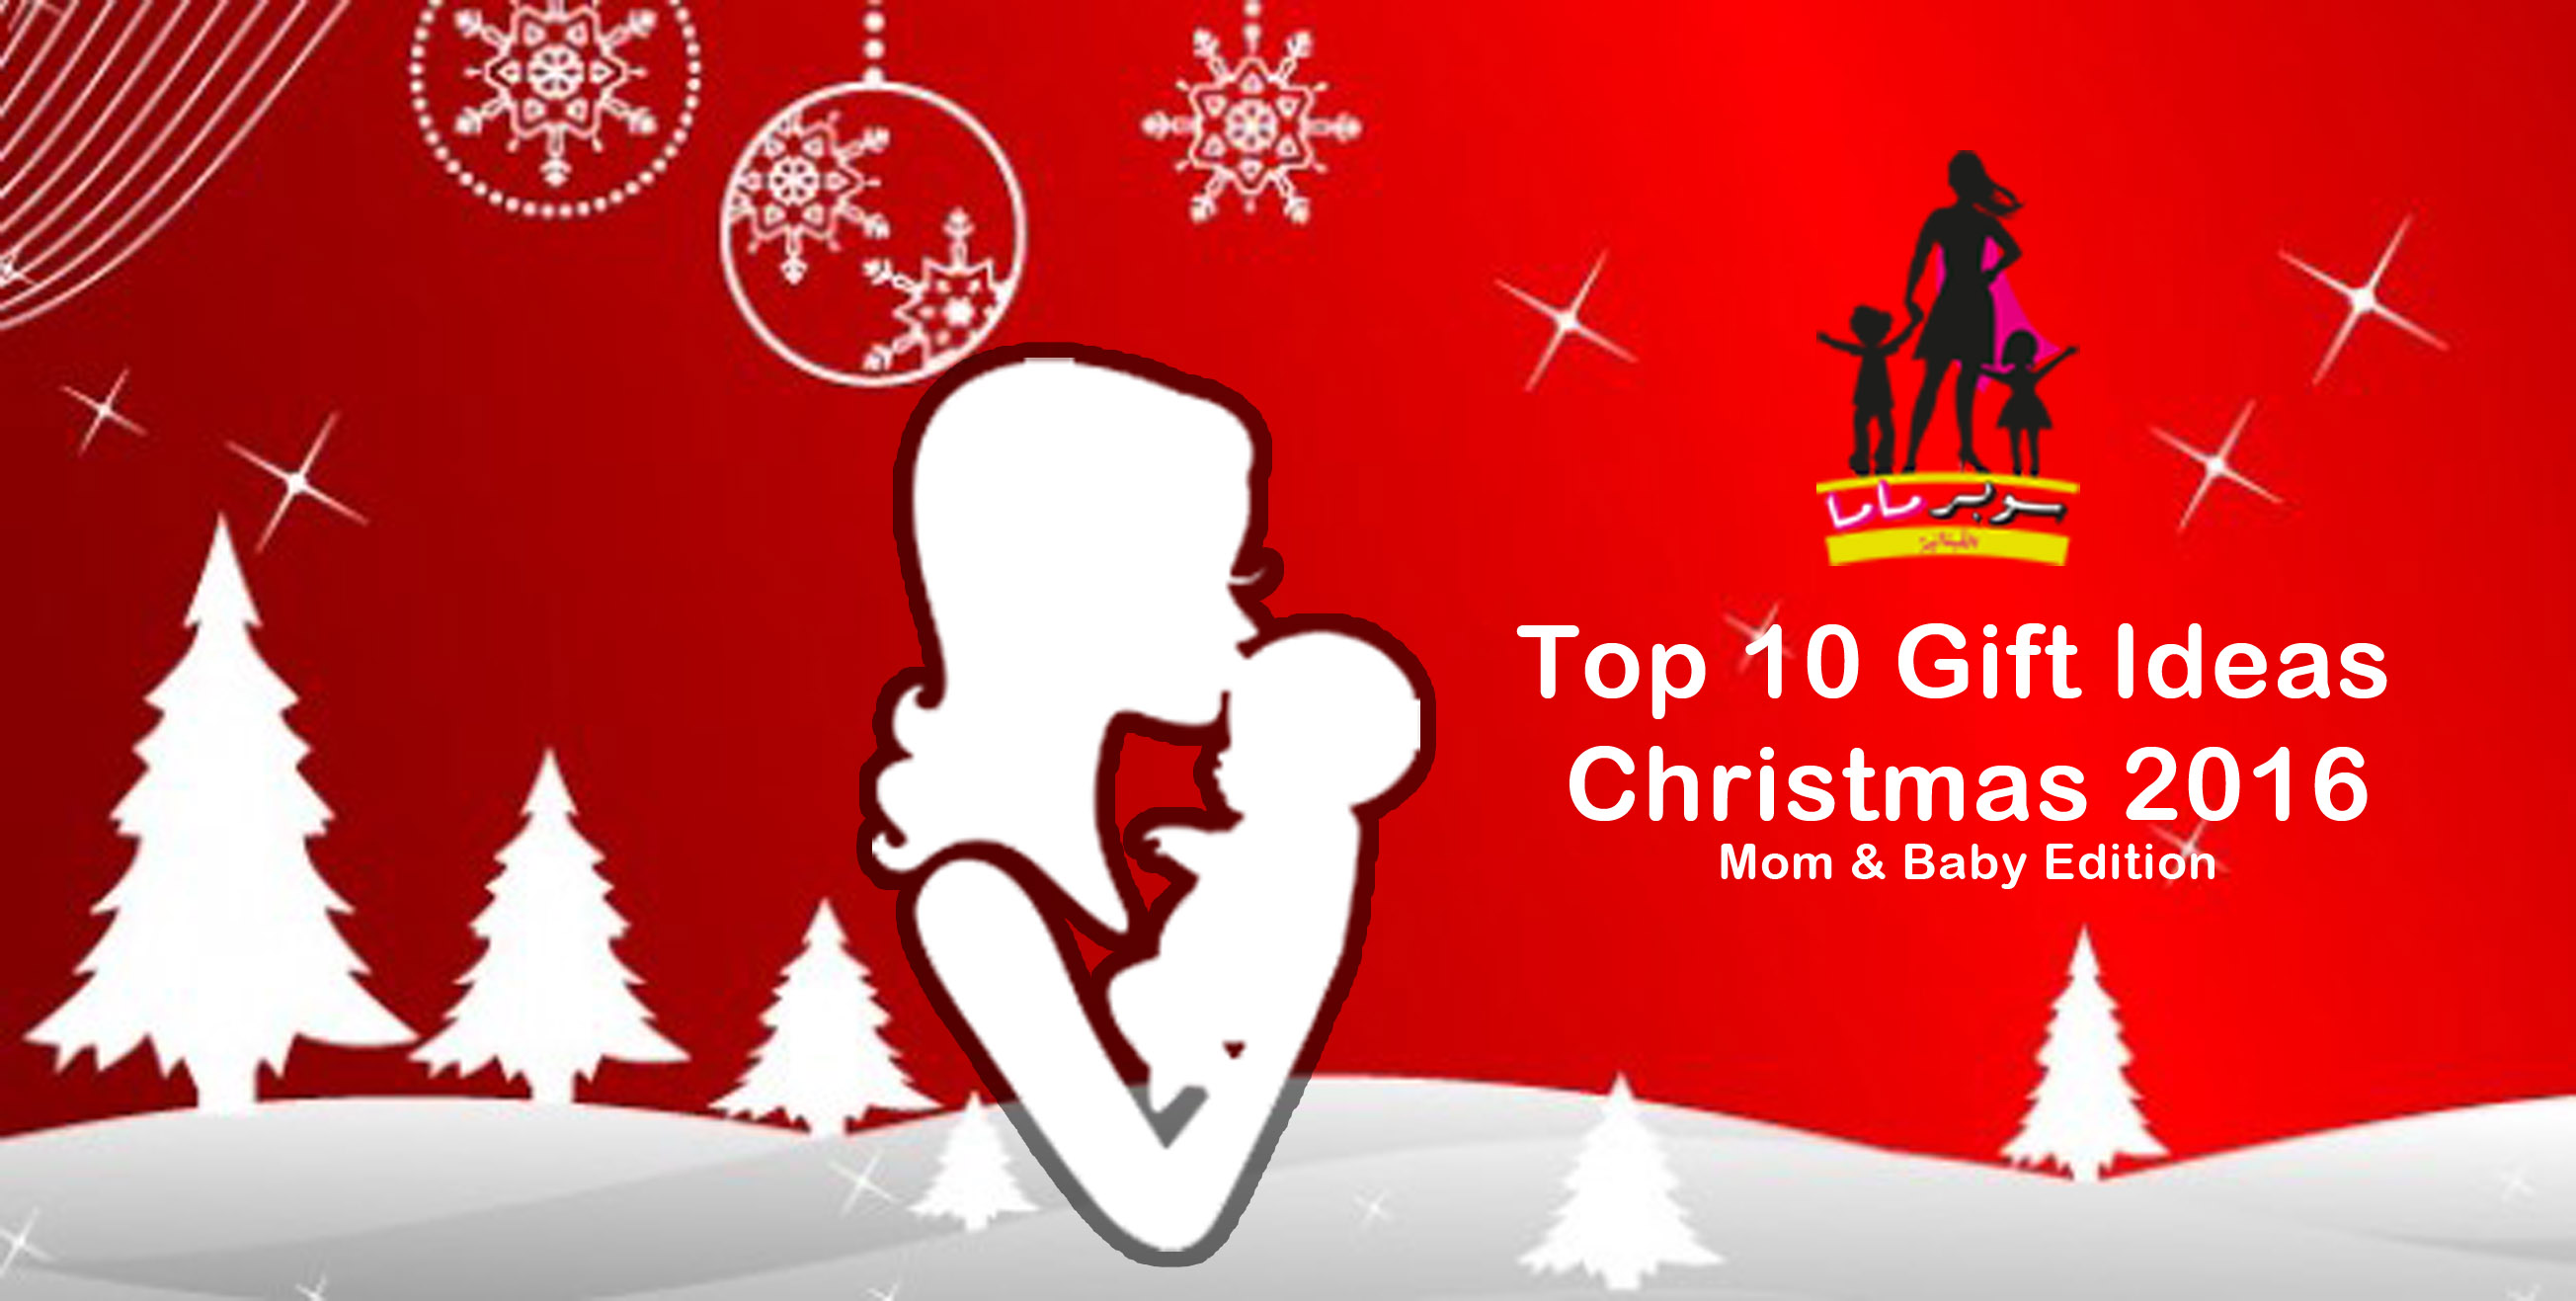 Top 10 gifts for christmas for mom